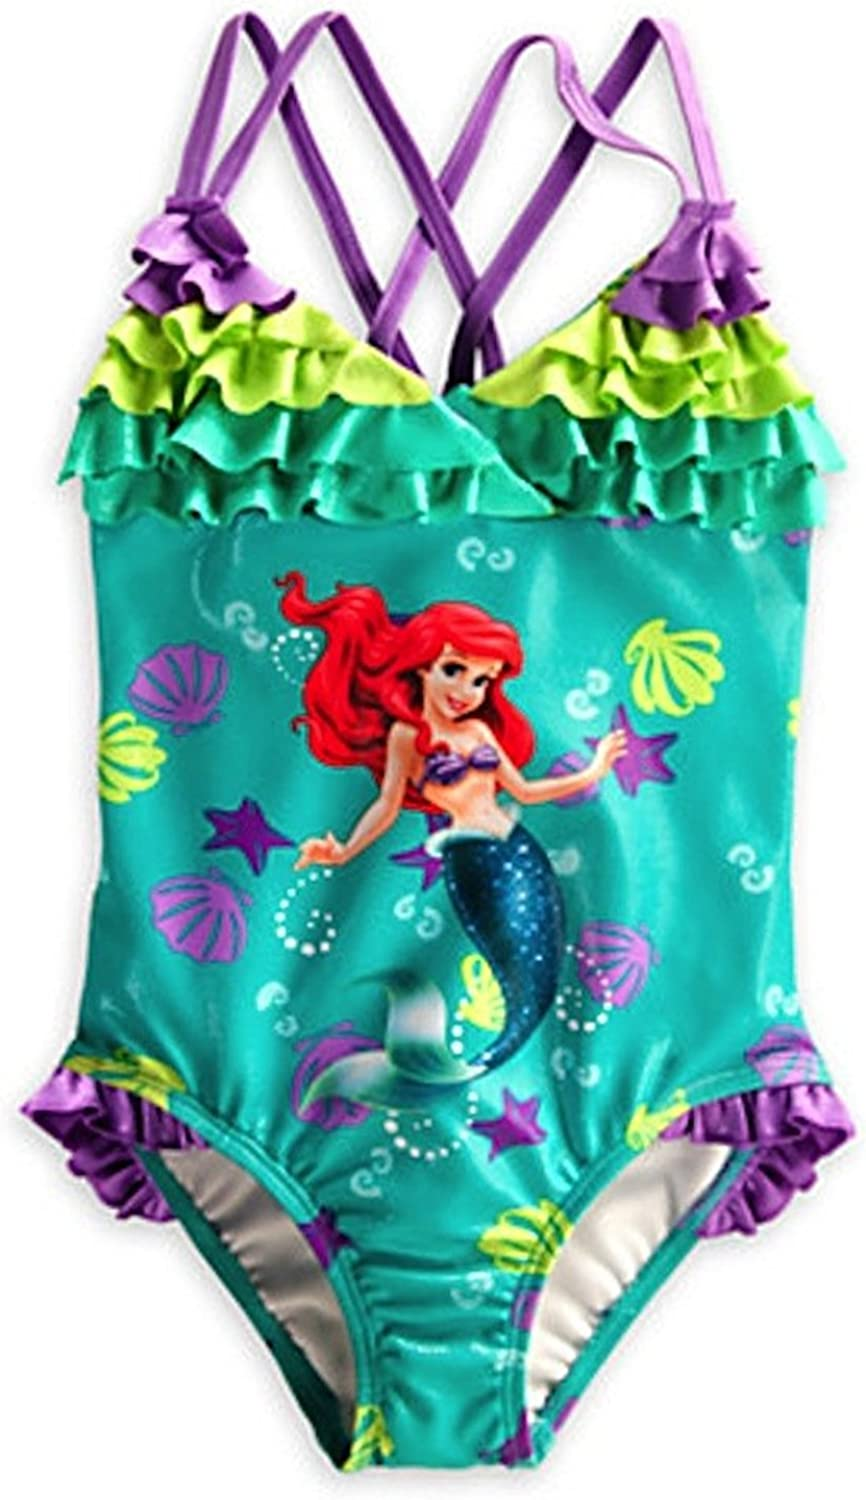 Disney Store Deluxe Ariel The Little Mermaid Trikini Swimsuit Size Medium 7-8